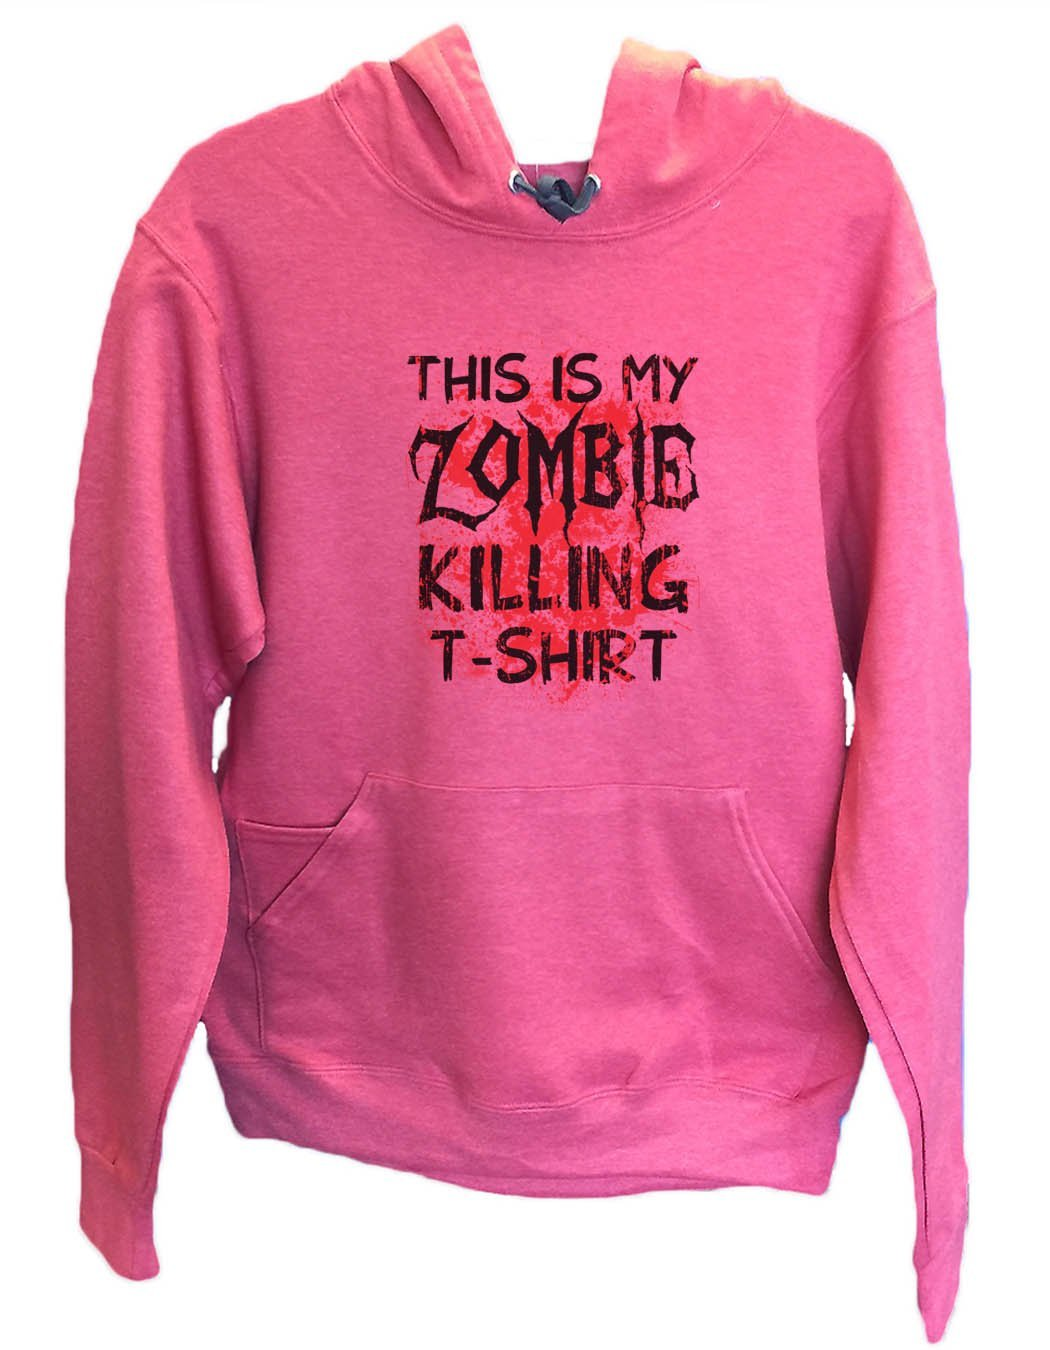 UNISEX HOODIE - This Is My Zombie Killing T-Shirt - FUNNY MENS AND WOMENS HOODED SWEATSHIRTS - 2312 Funny Shirt Small / Cranberry Red